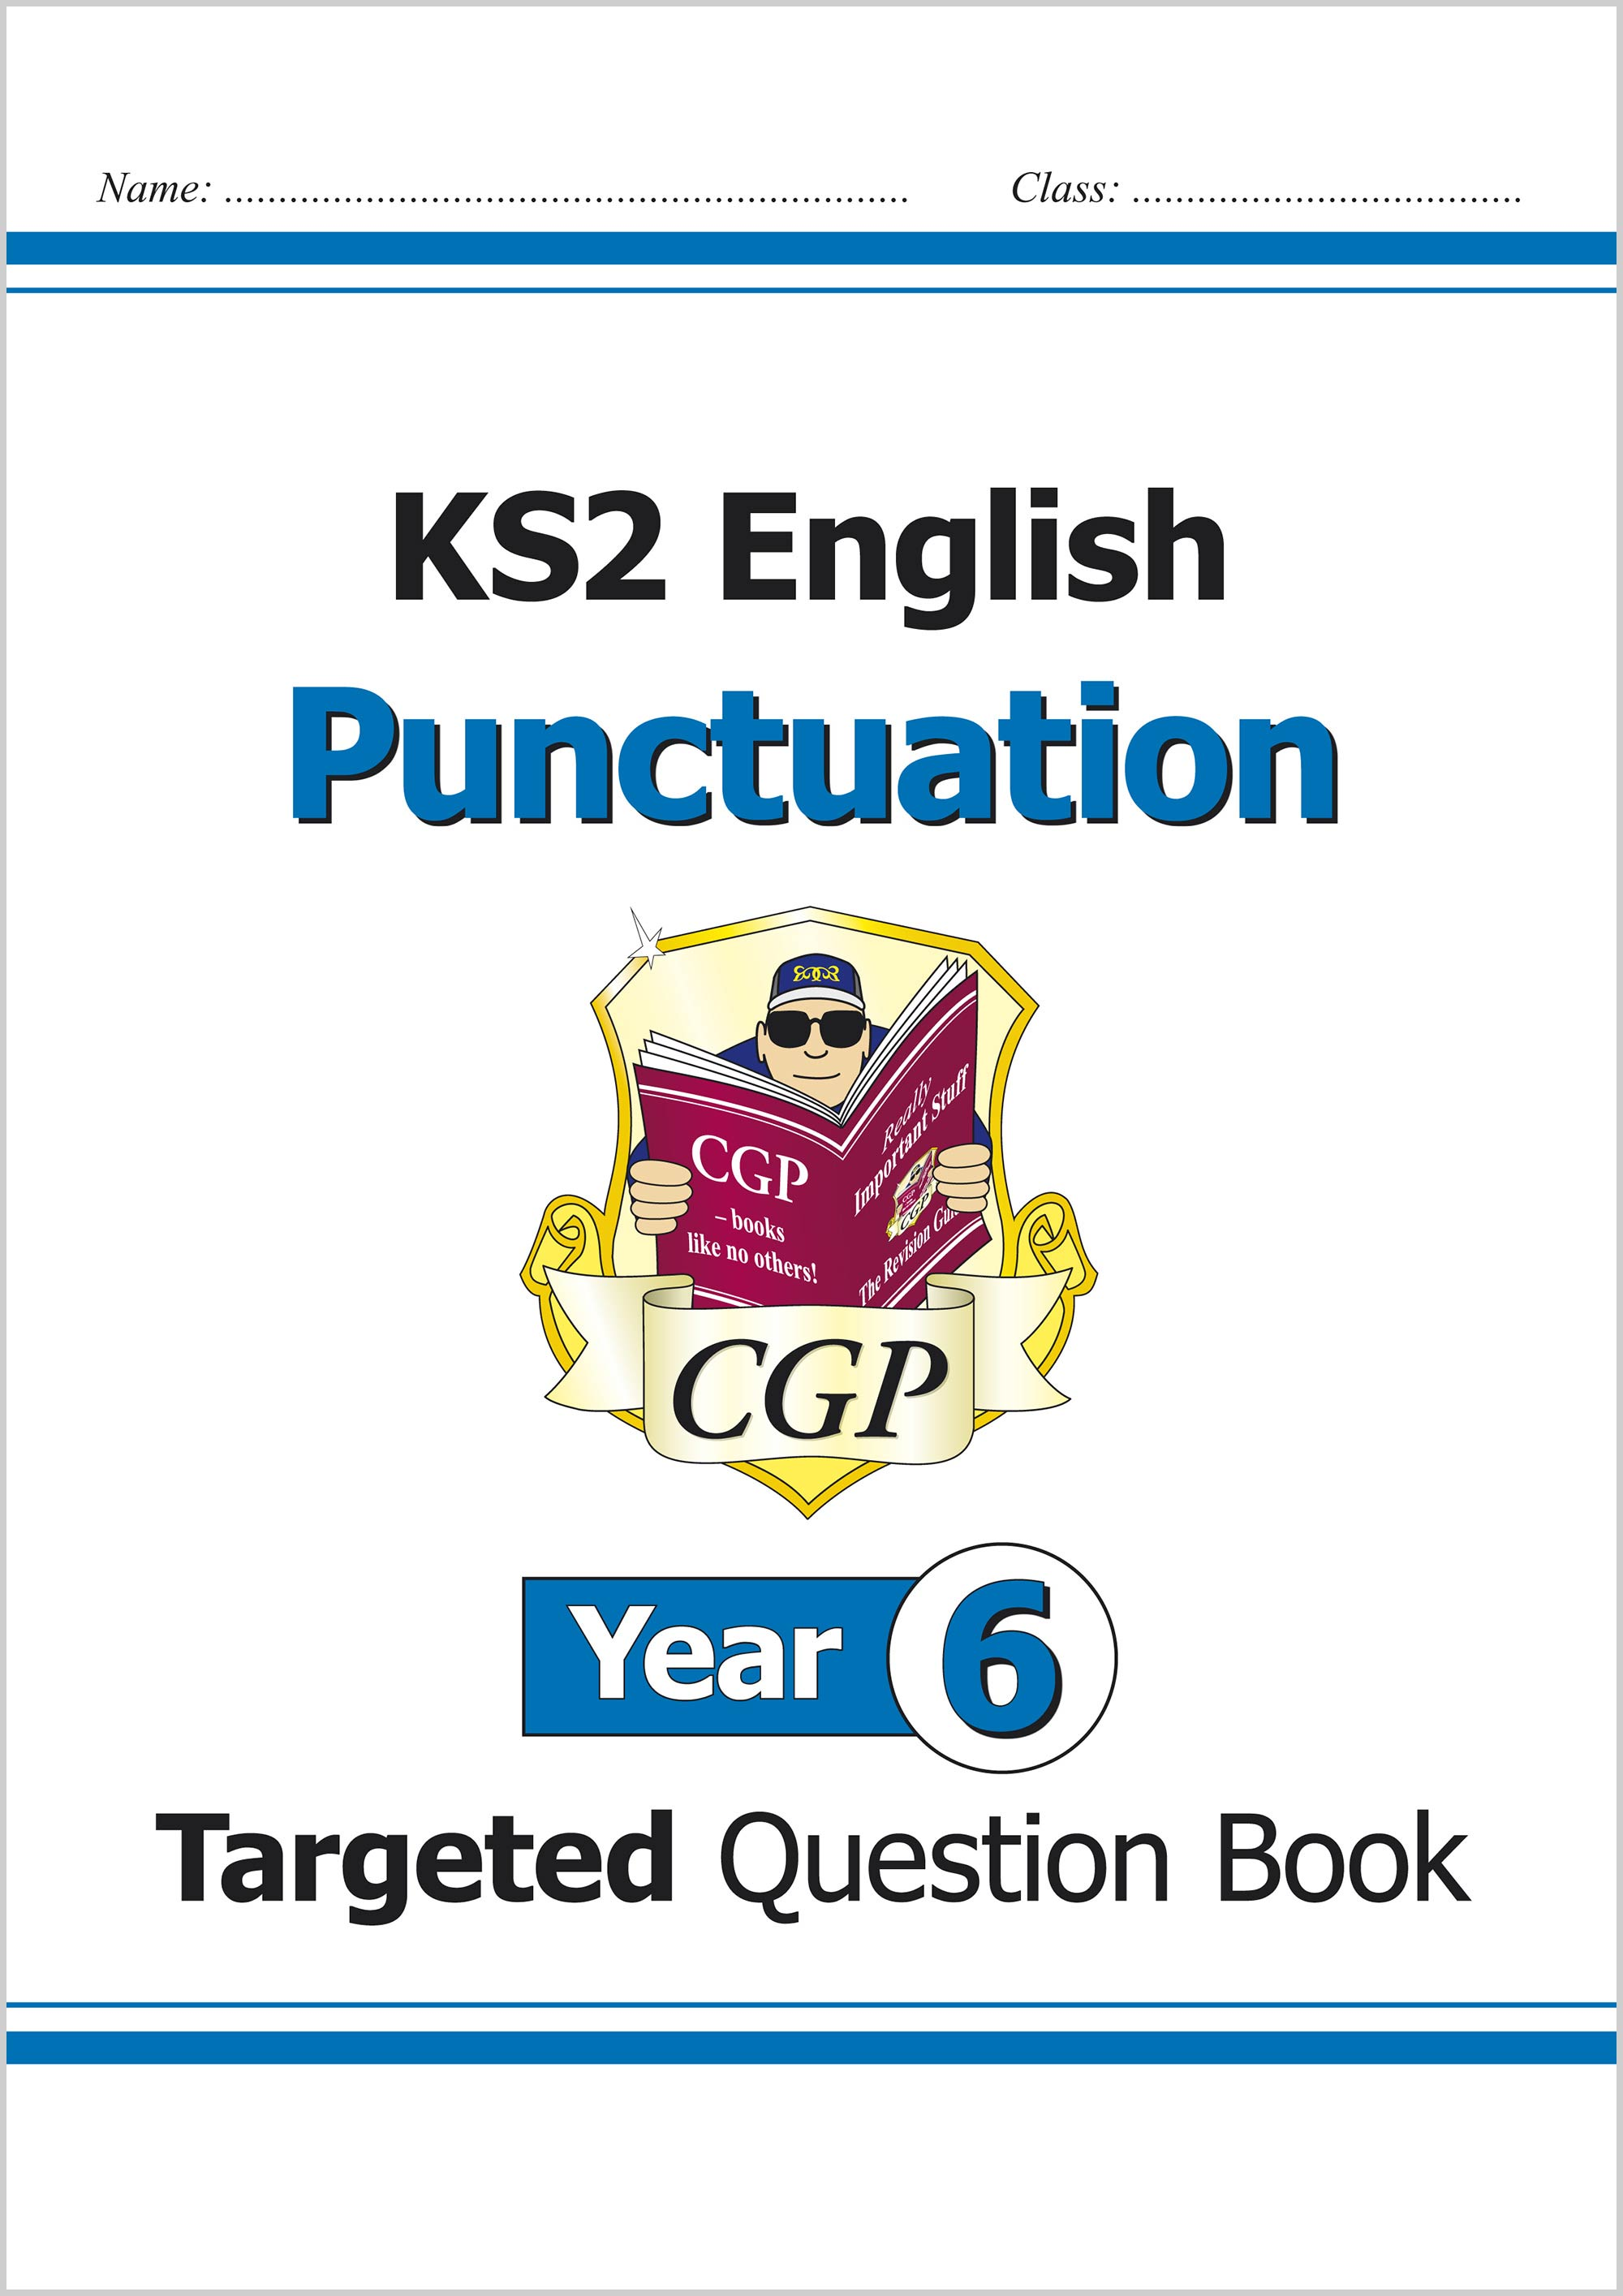 E6PW21 - KS2 English Targeted Question Book: Punctuation - Year 6